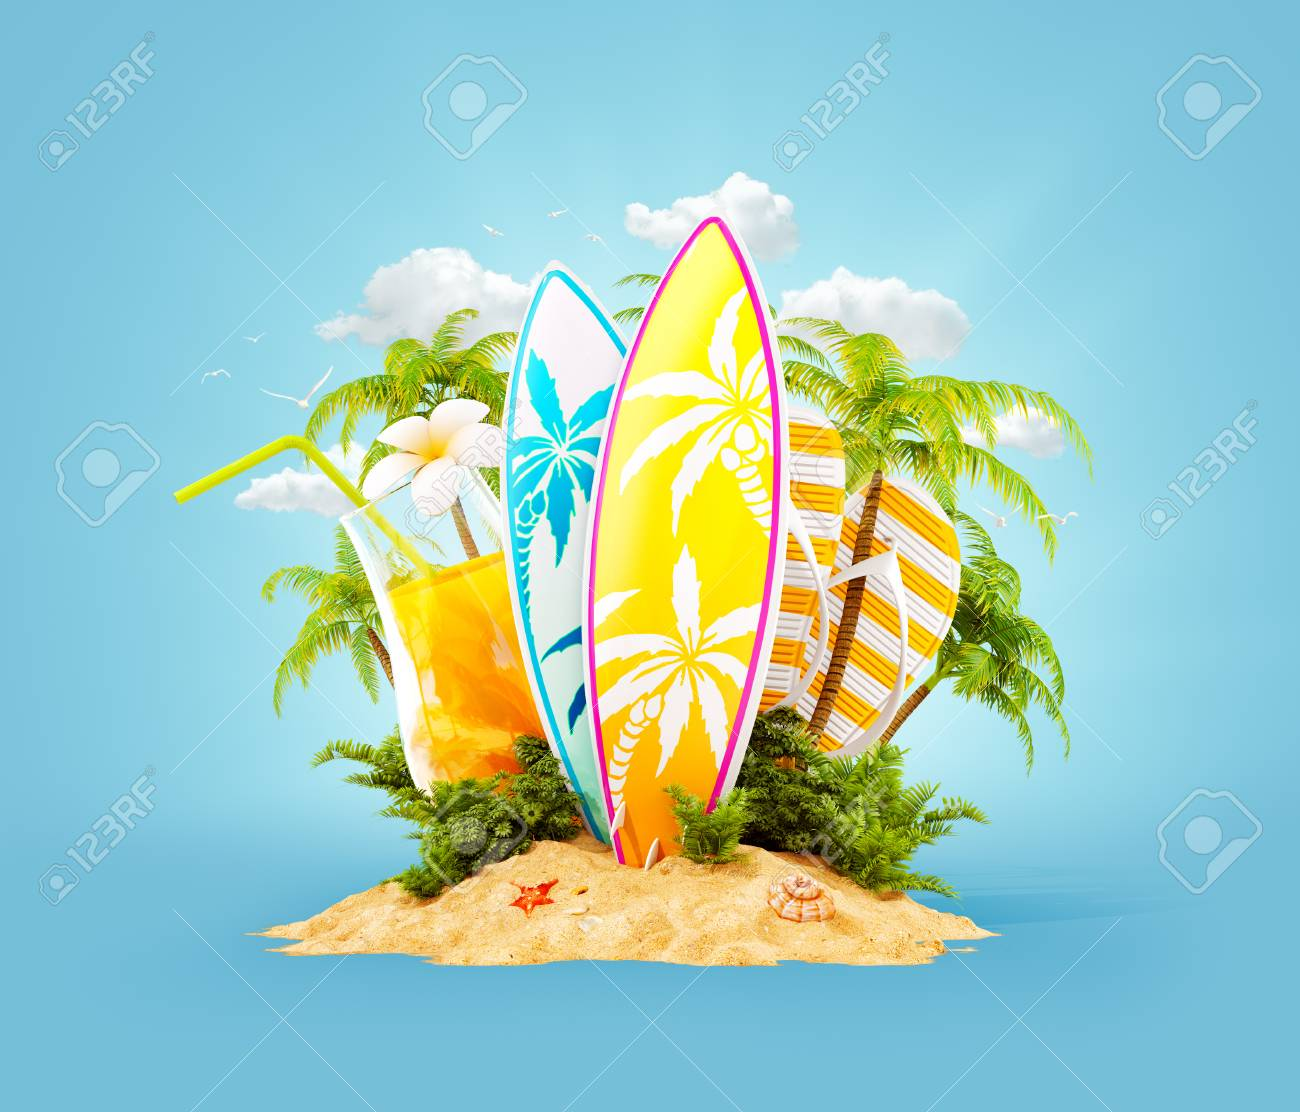 Surf boards on paradise island with palms. Unusual travel 3d illustration. Summer vacation concept - 96080720